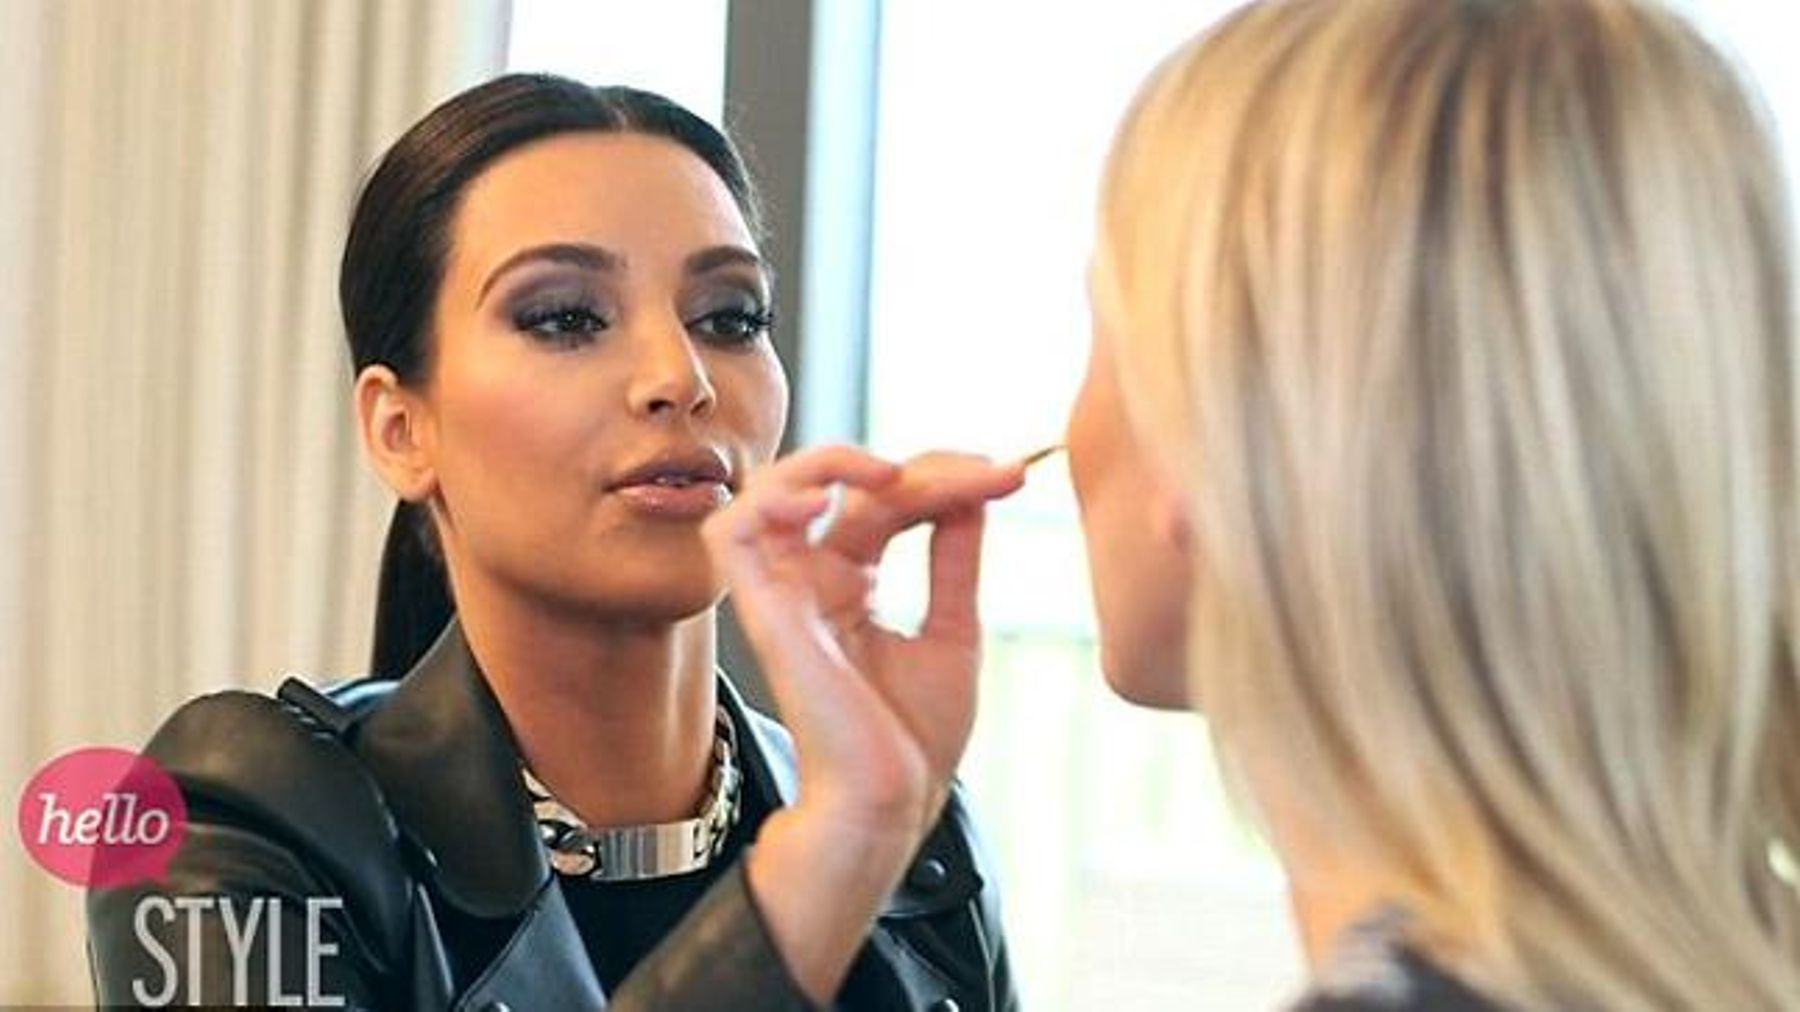 Watch: Kim Kardashian shows you how to contour in make-up